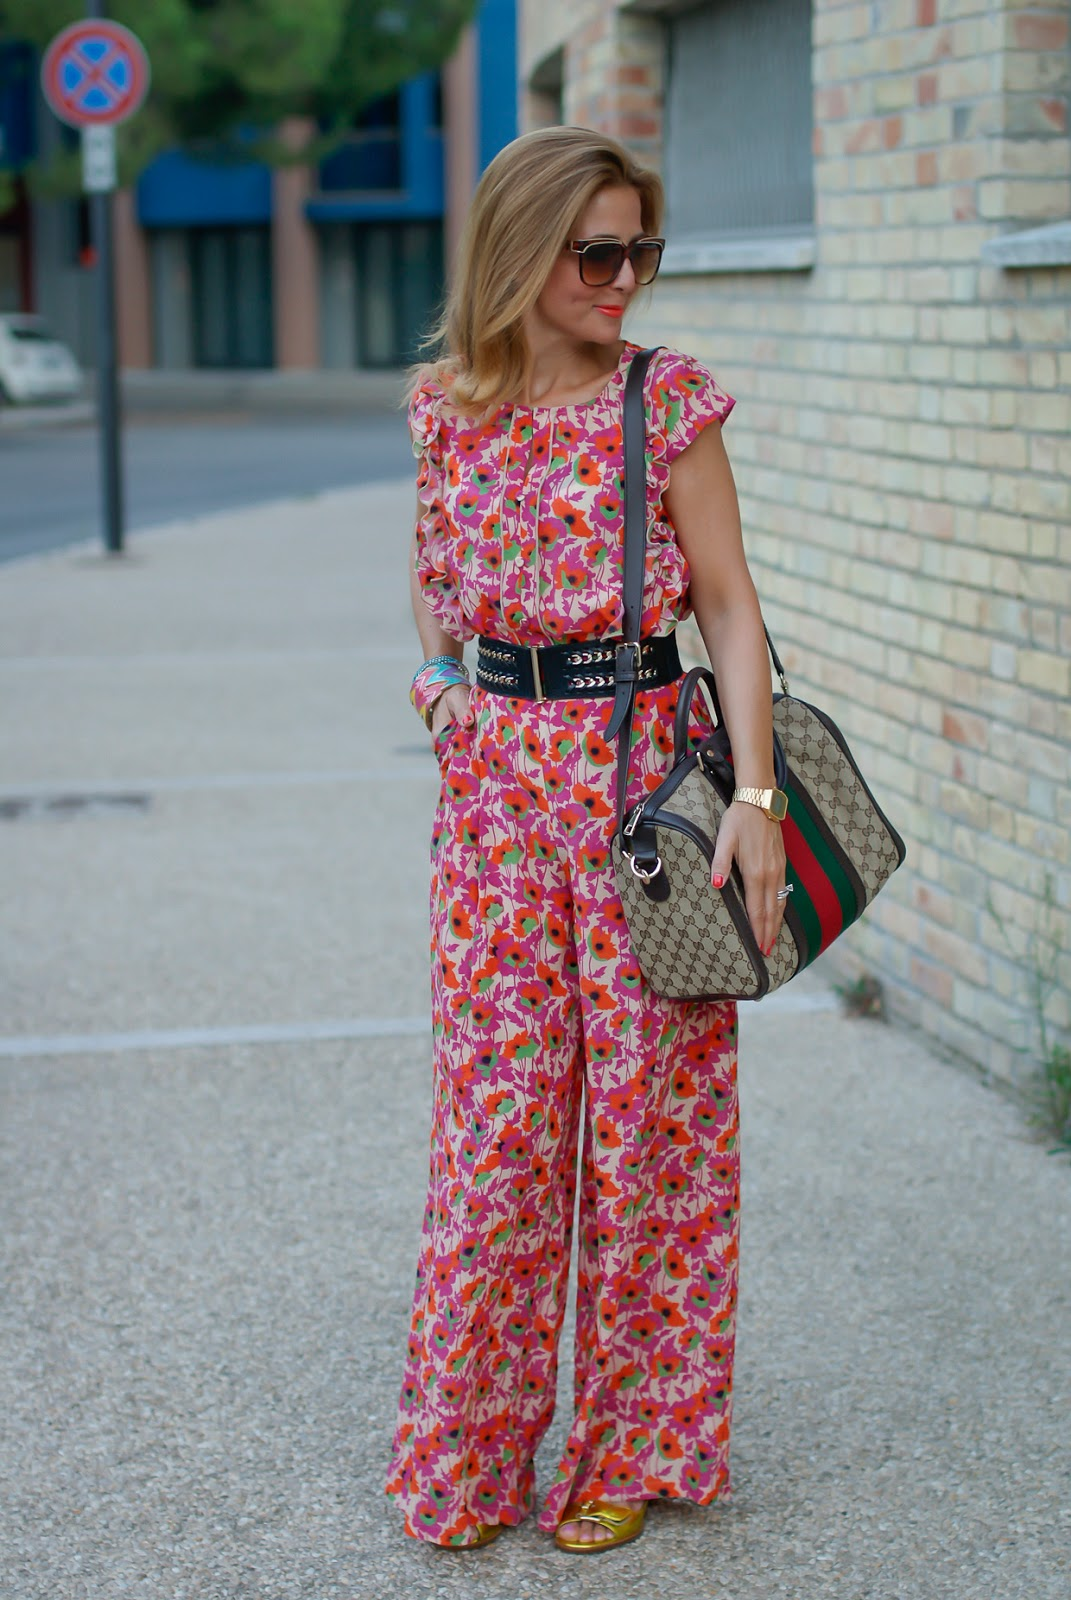 Gucci silk printed suit on Fashion and Cookies fashion blog, fashion blogger style